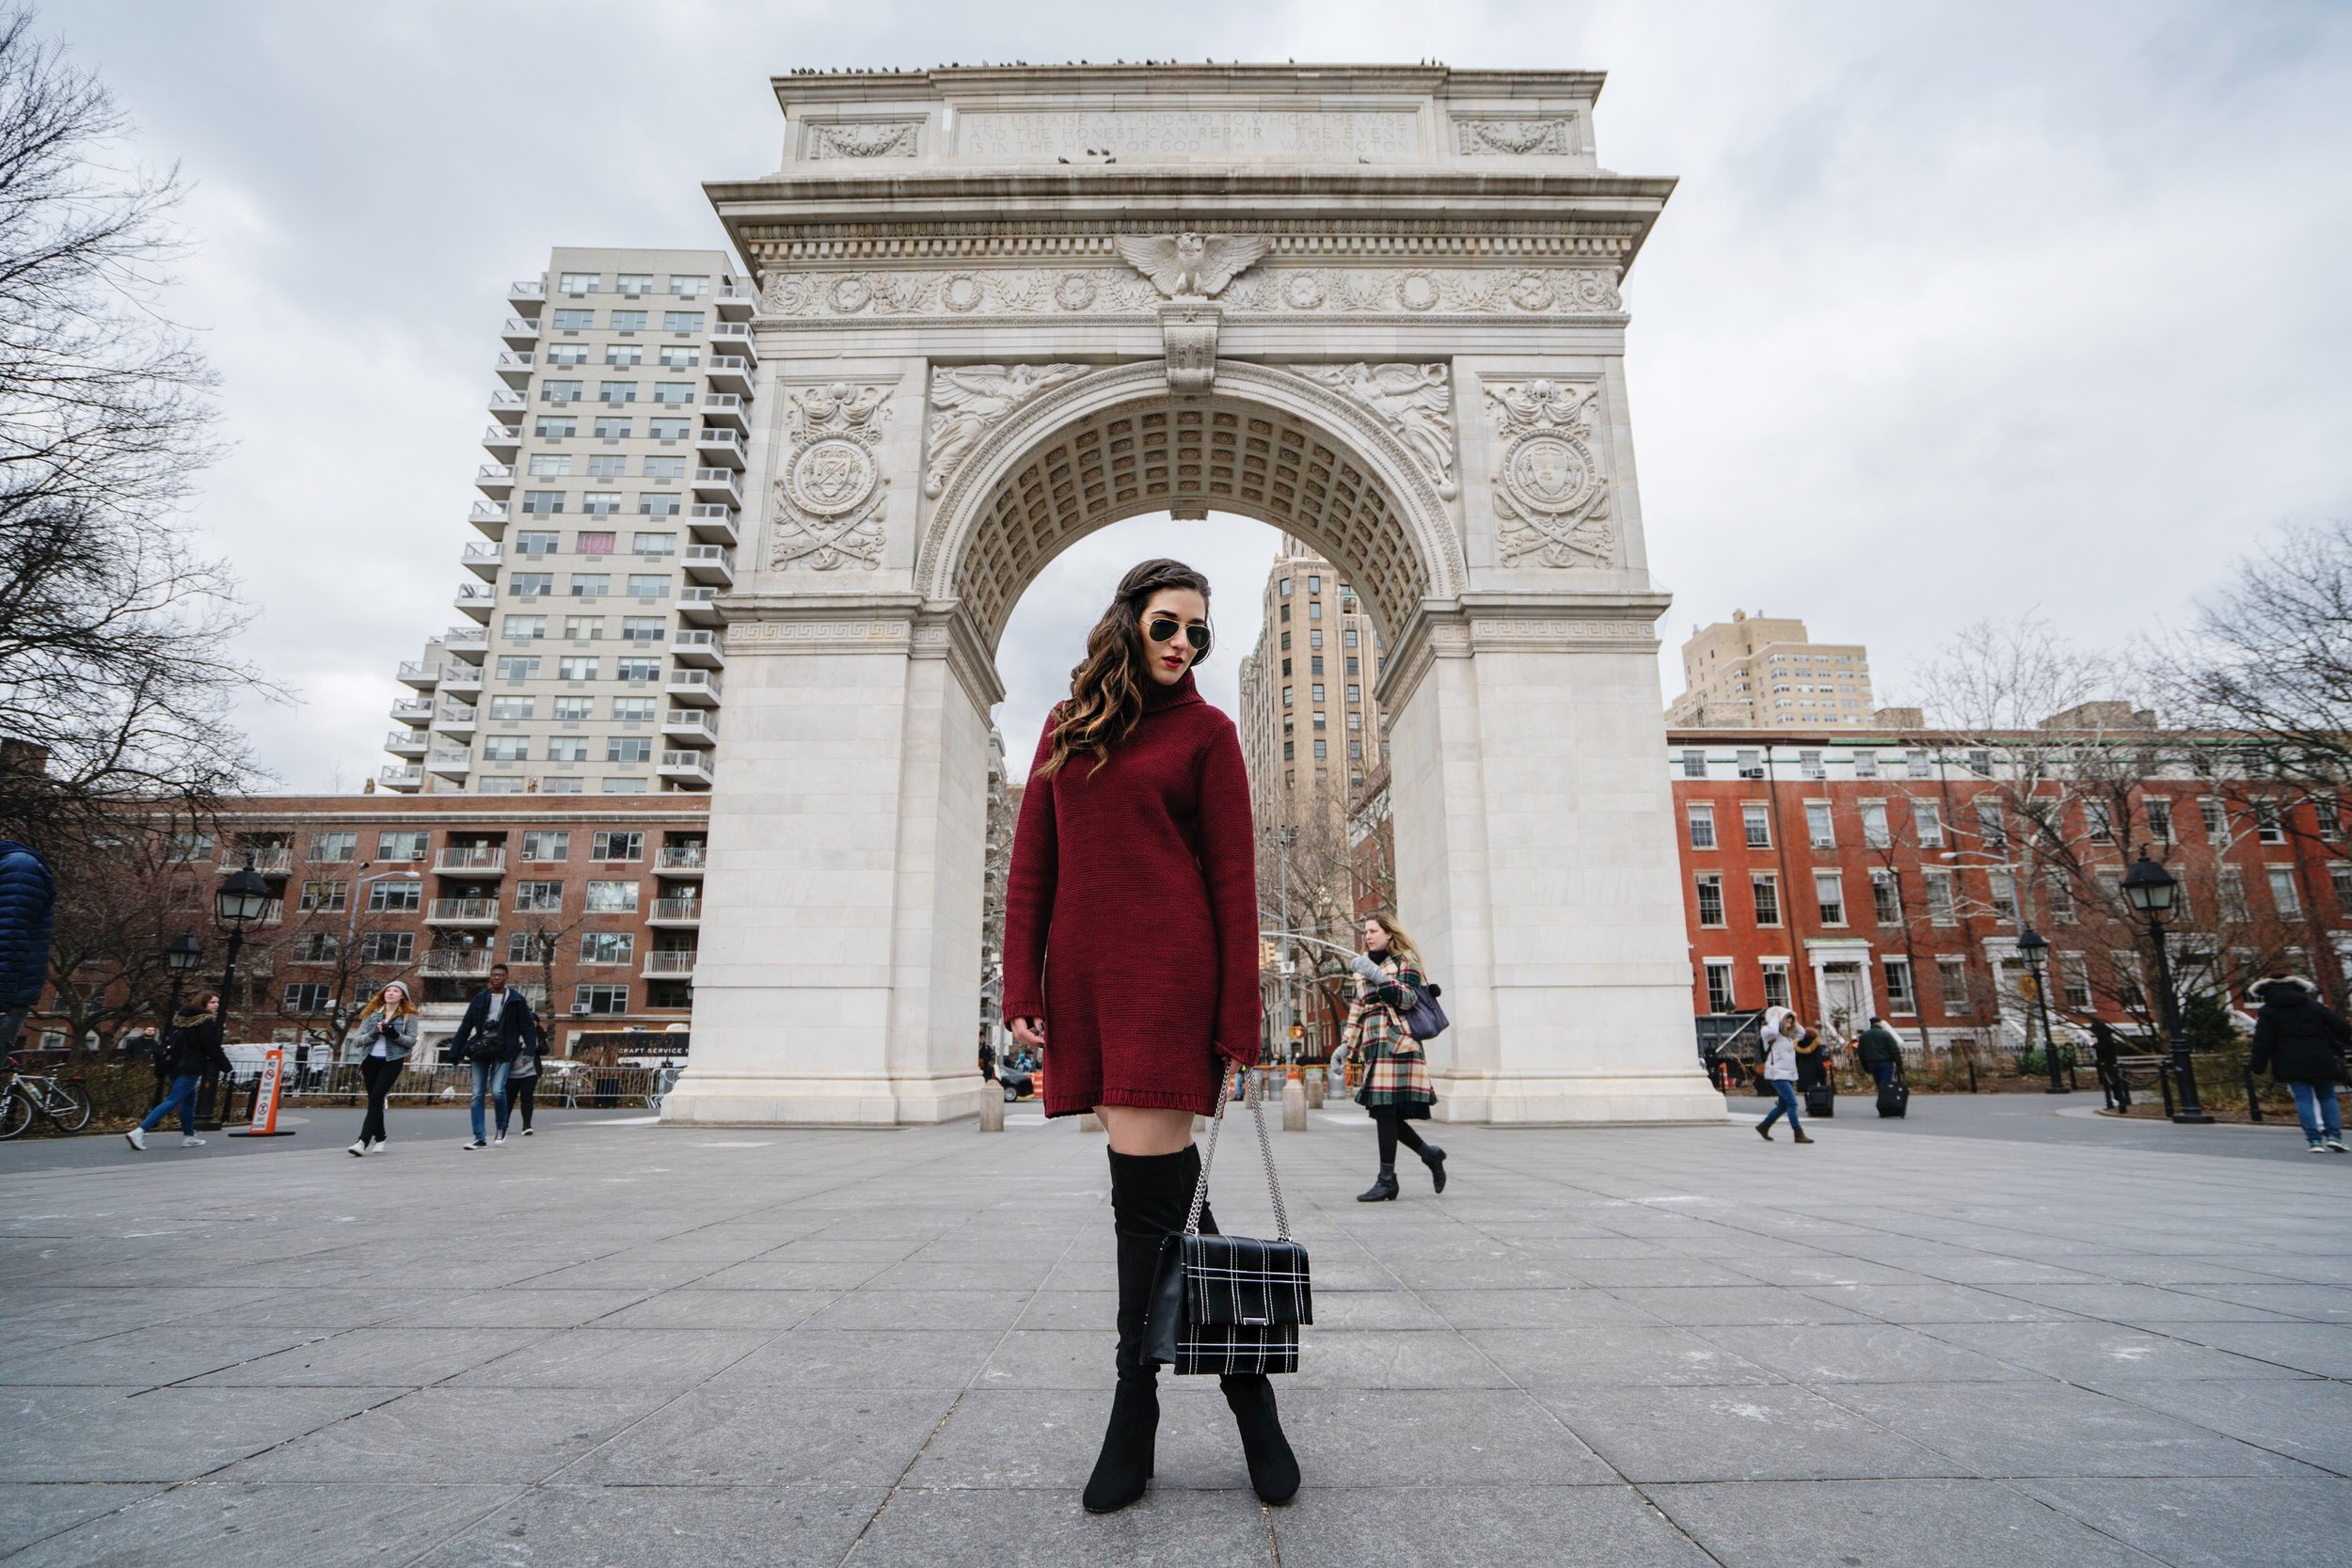 Maroon Sweater Dress OTK Boots My Biggest Blogging Mistake Esther Santer Fashion Blog NYC Street Style Blogger Outfit OOTD Trendy Red Girl Women Sunglasses RayBan Aviators Shopping Wearing Zara Casual Bag Grid Purse Inspo Photoshoot New York City Hair.JPG